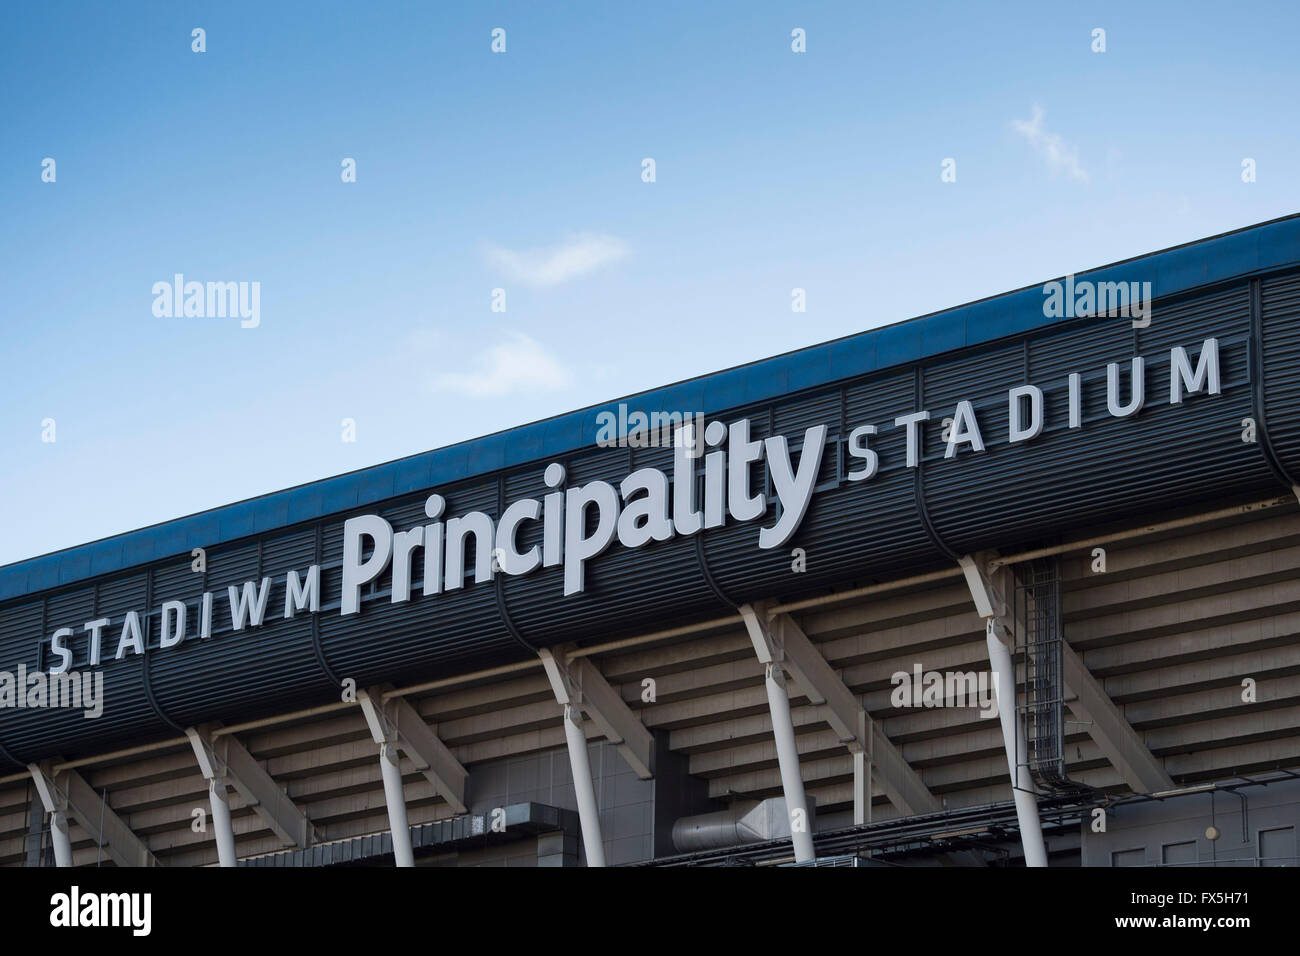 Principality Stadium sign logo in Cardiff, south Wales. - Stock Image